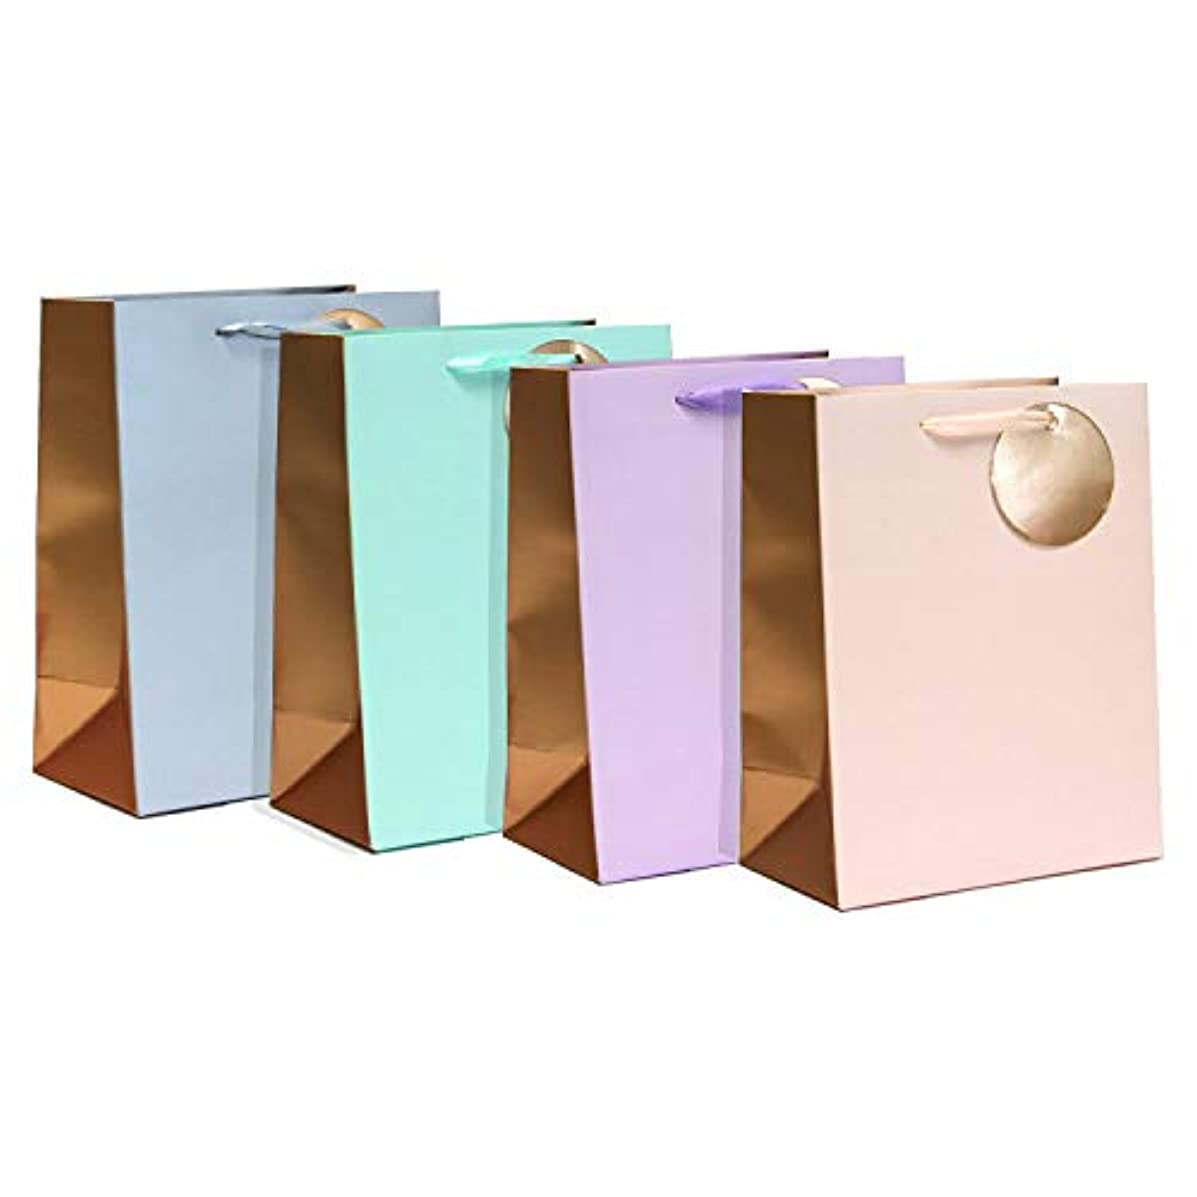 Gift Expressions Medium Size Gift Bags - 3 Set of 4 Color Designs Matte with Metallic Printing Assorted Gradation Color Everyday Gift Bags for Mother's Day, Birthday and Wedding(Bougie, 12 pcs)